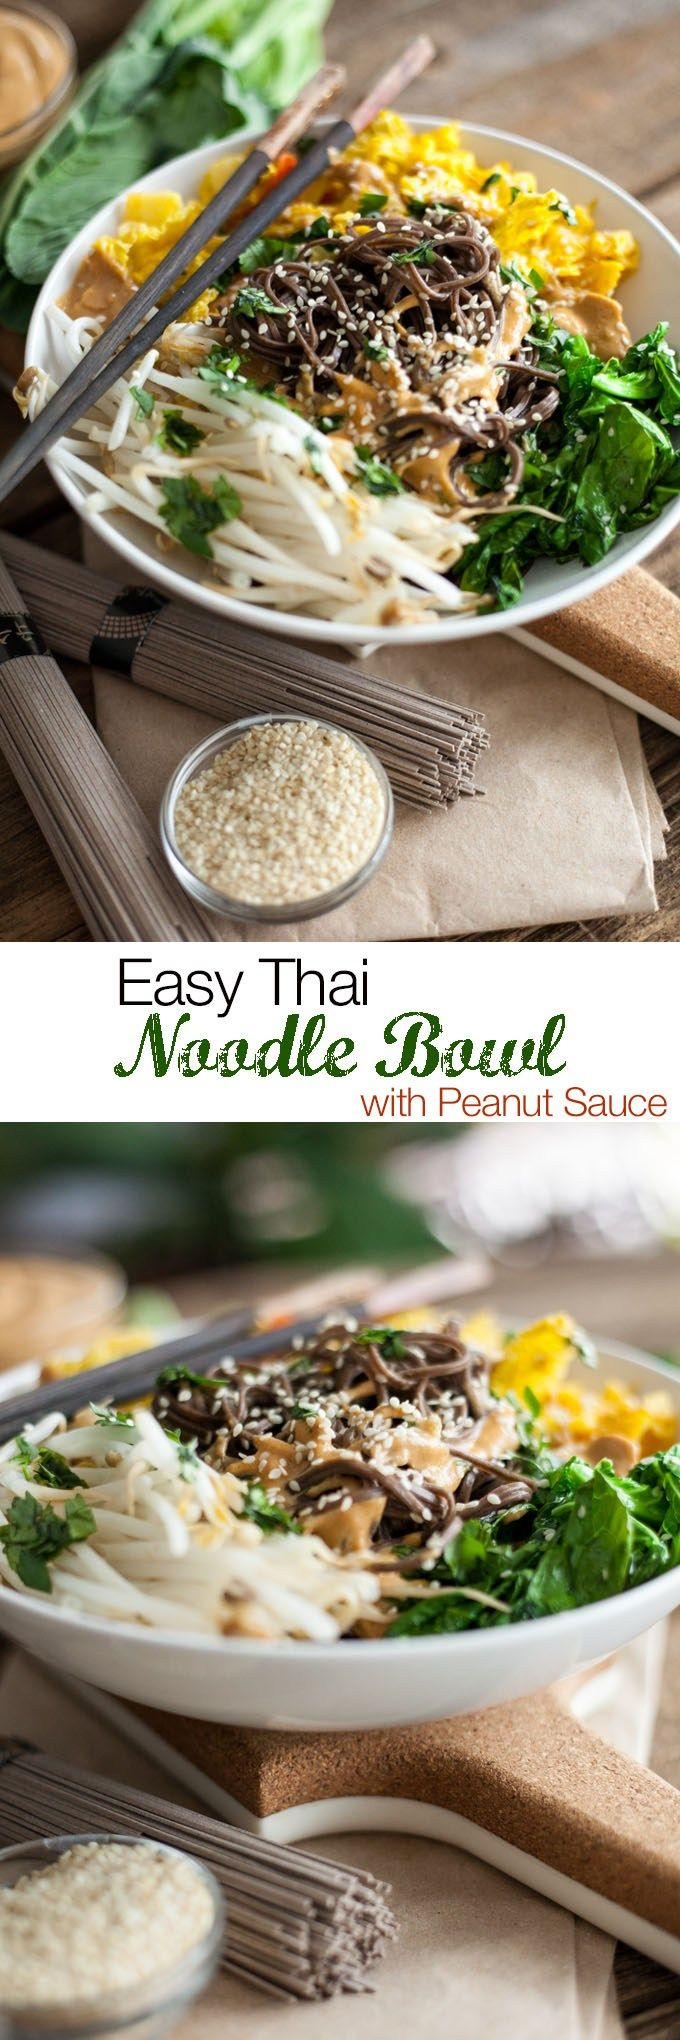 Vegan Thai Peanut Noodles Recipe VEGAN RECIPE